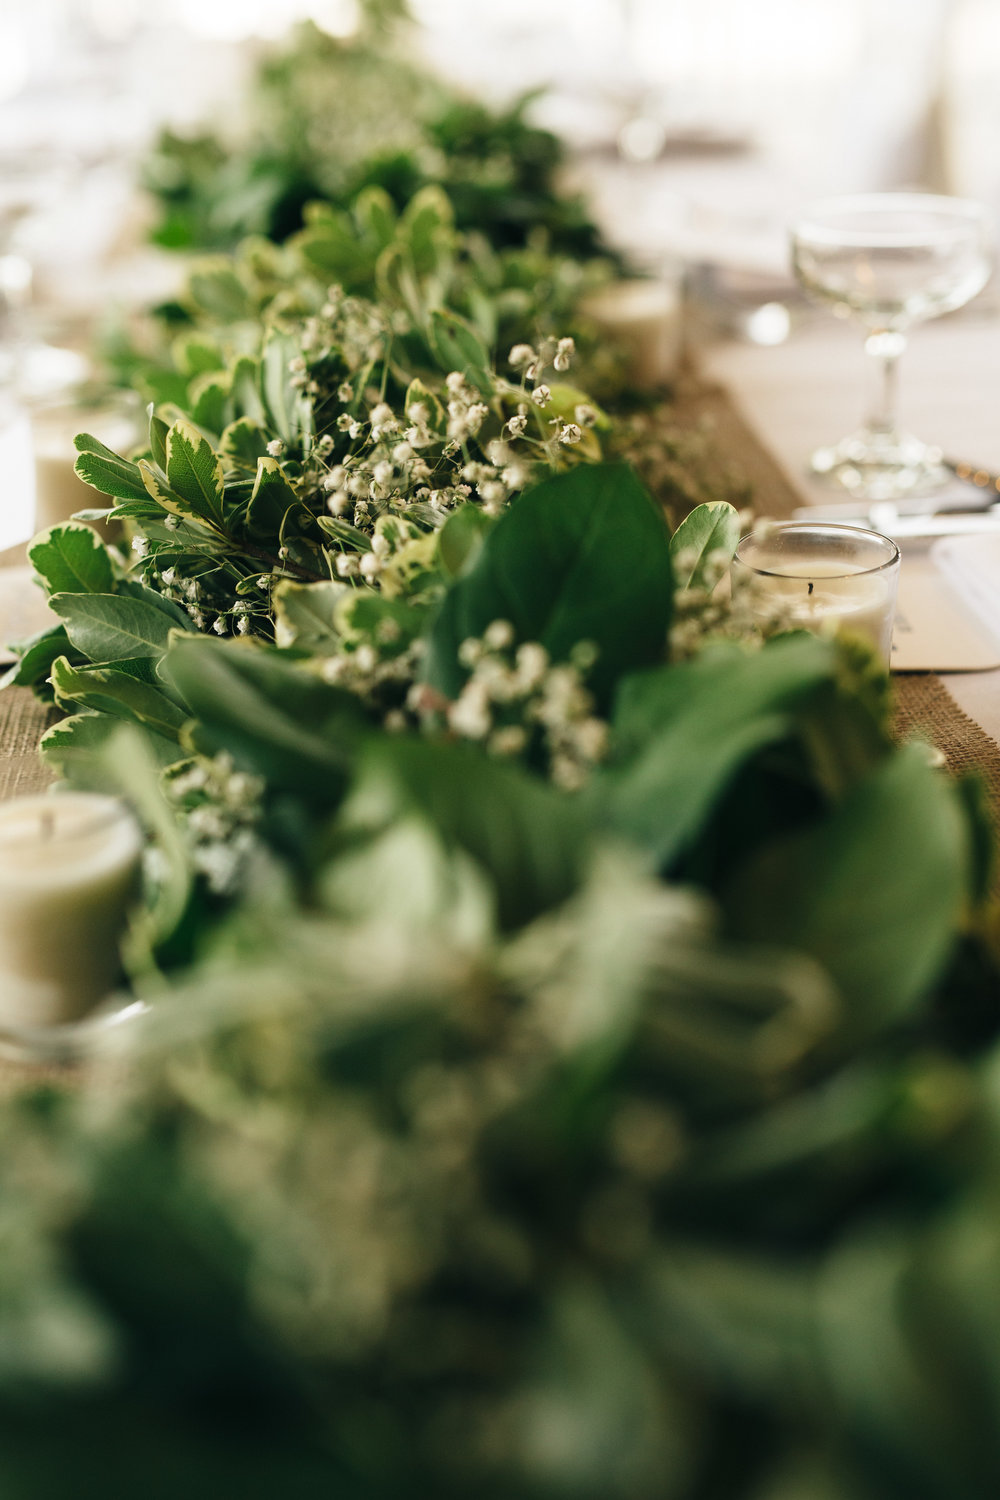 Floral arrangement full of wedding greenery.